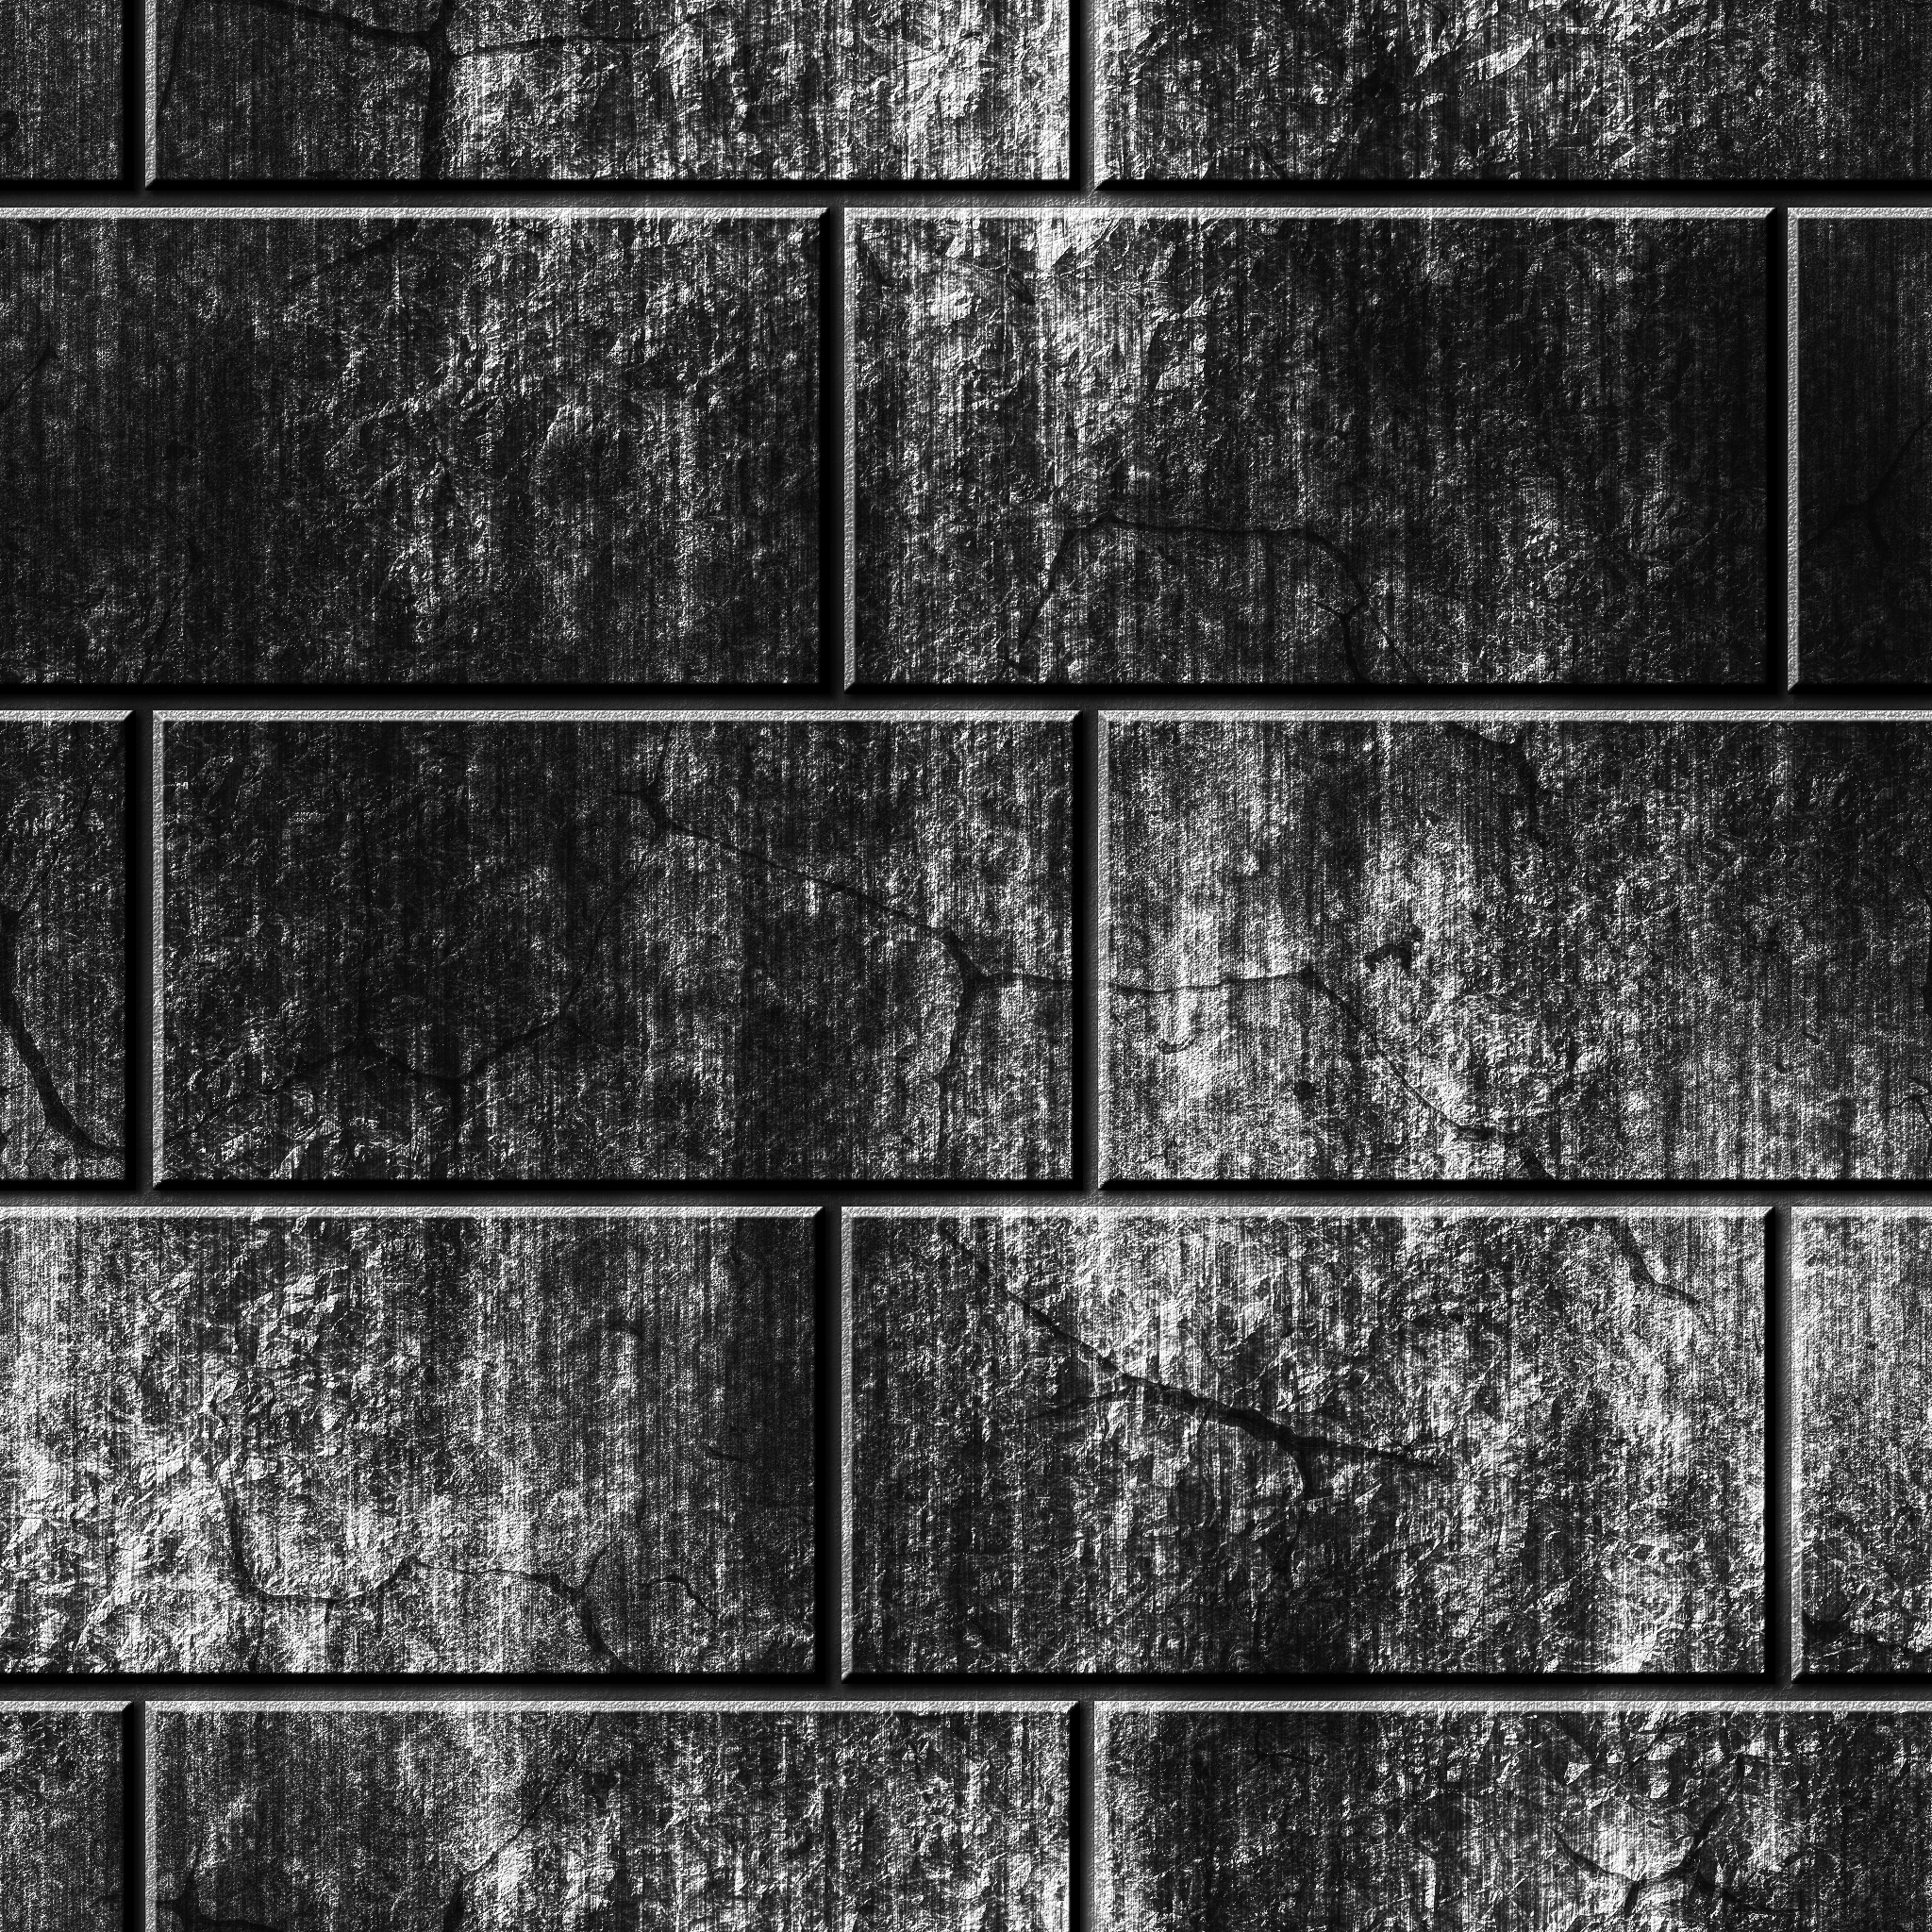 Grey Stone Bricks by Hoover1979